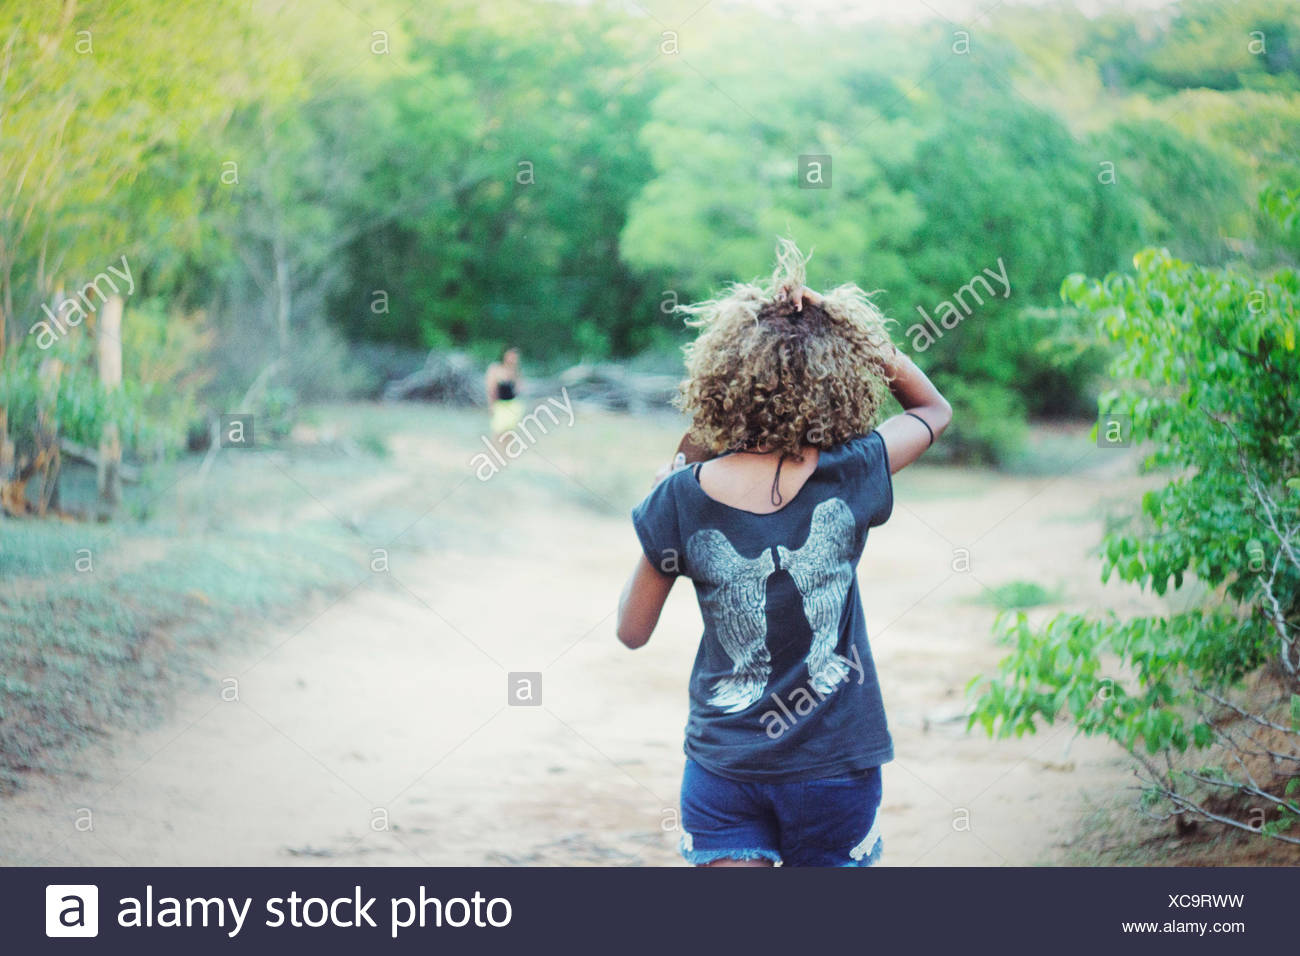 Rear View Of Woman Walking On Pathway - Stock Image